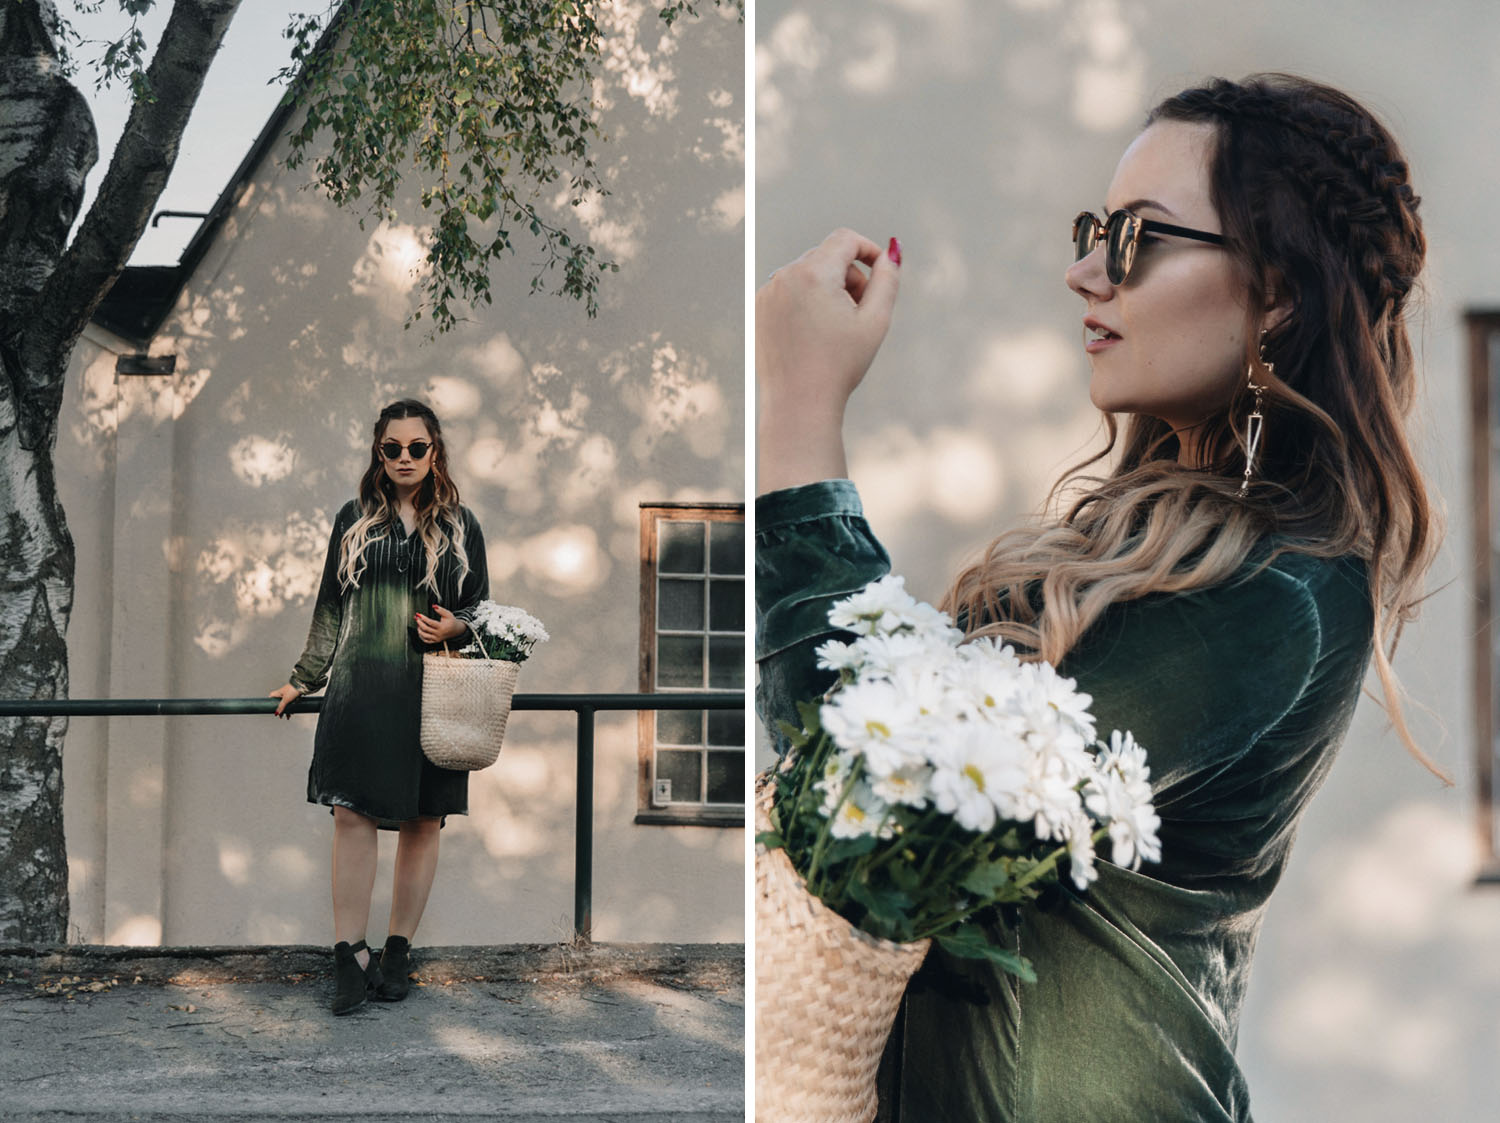 Green velvet dress outfit + basket & flowers